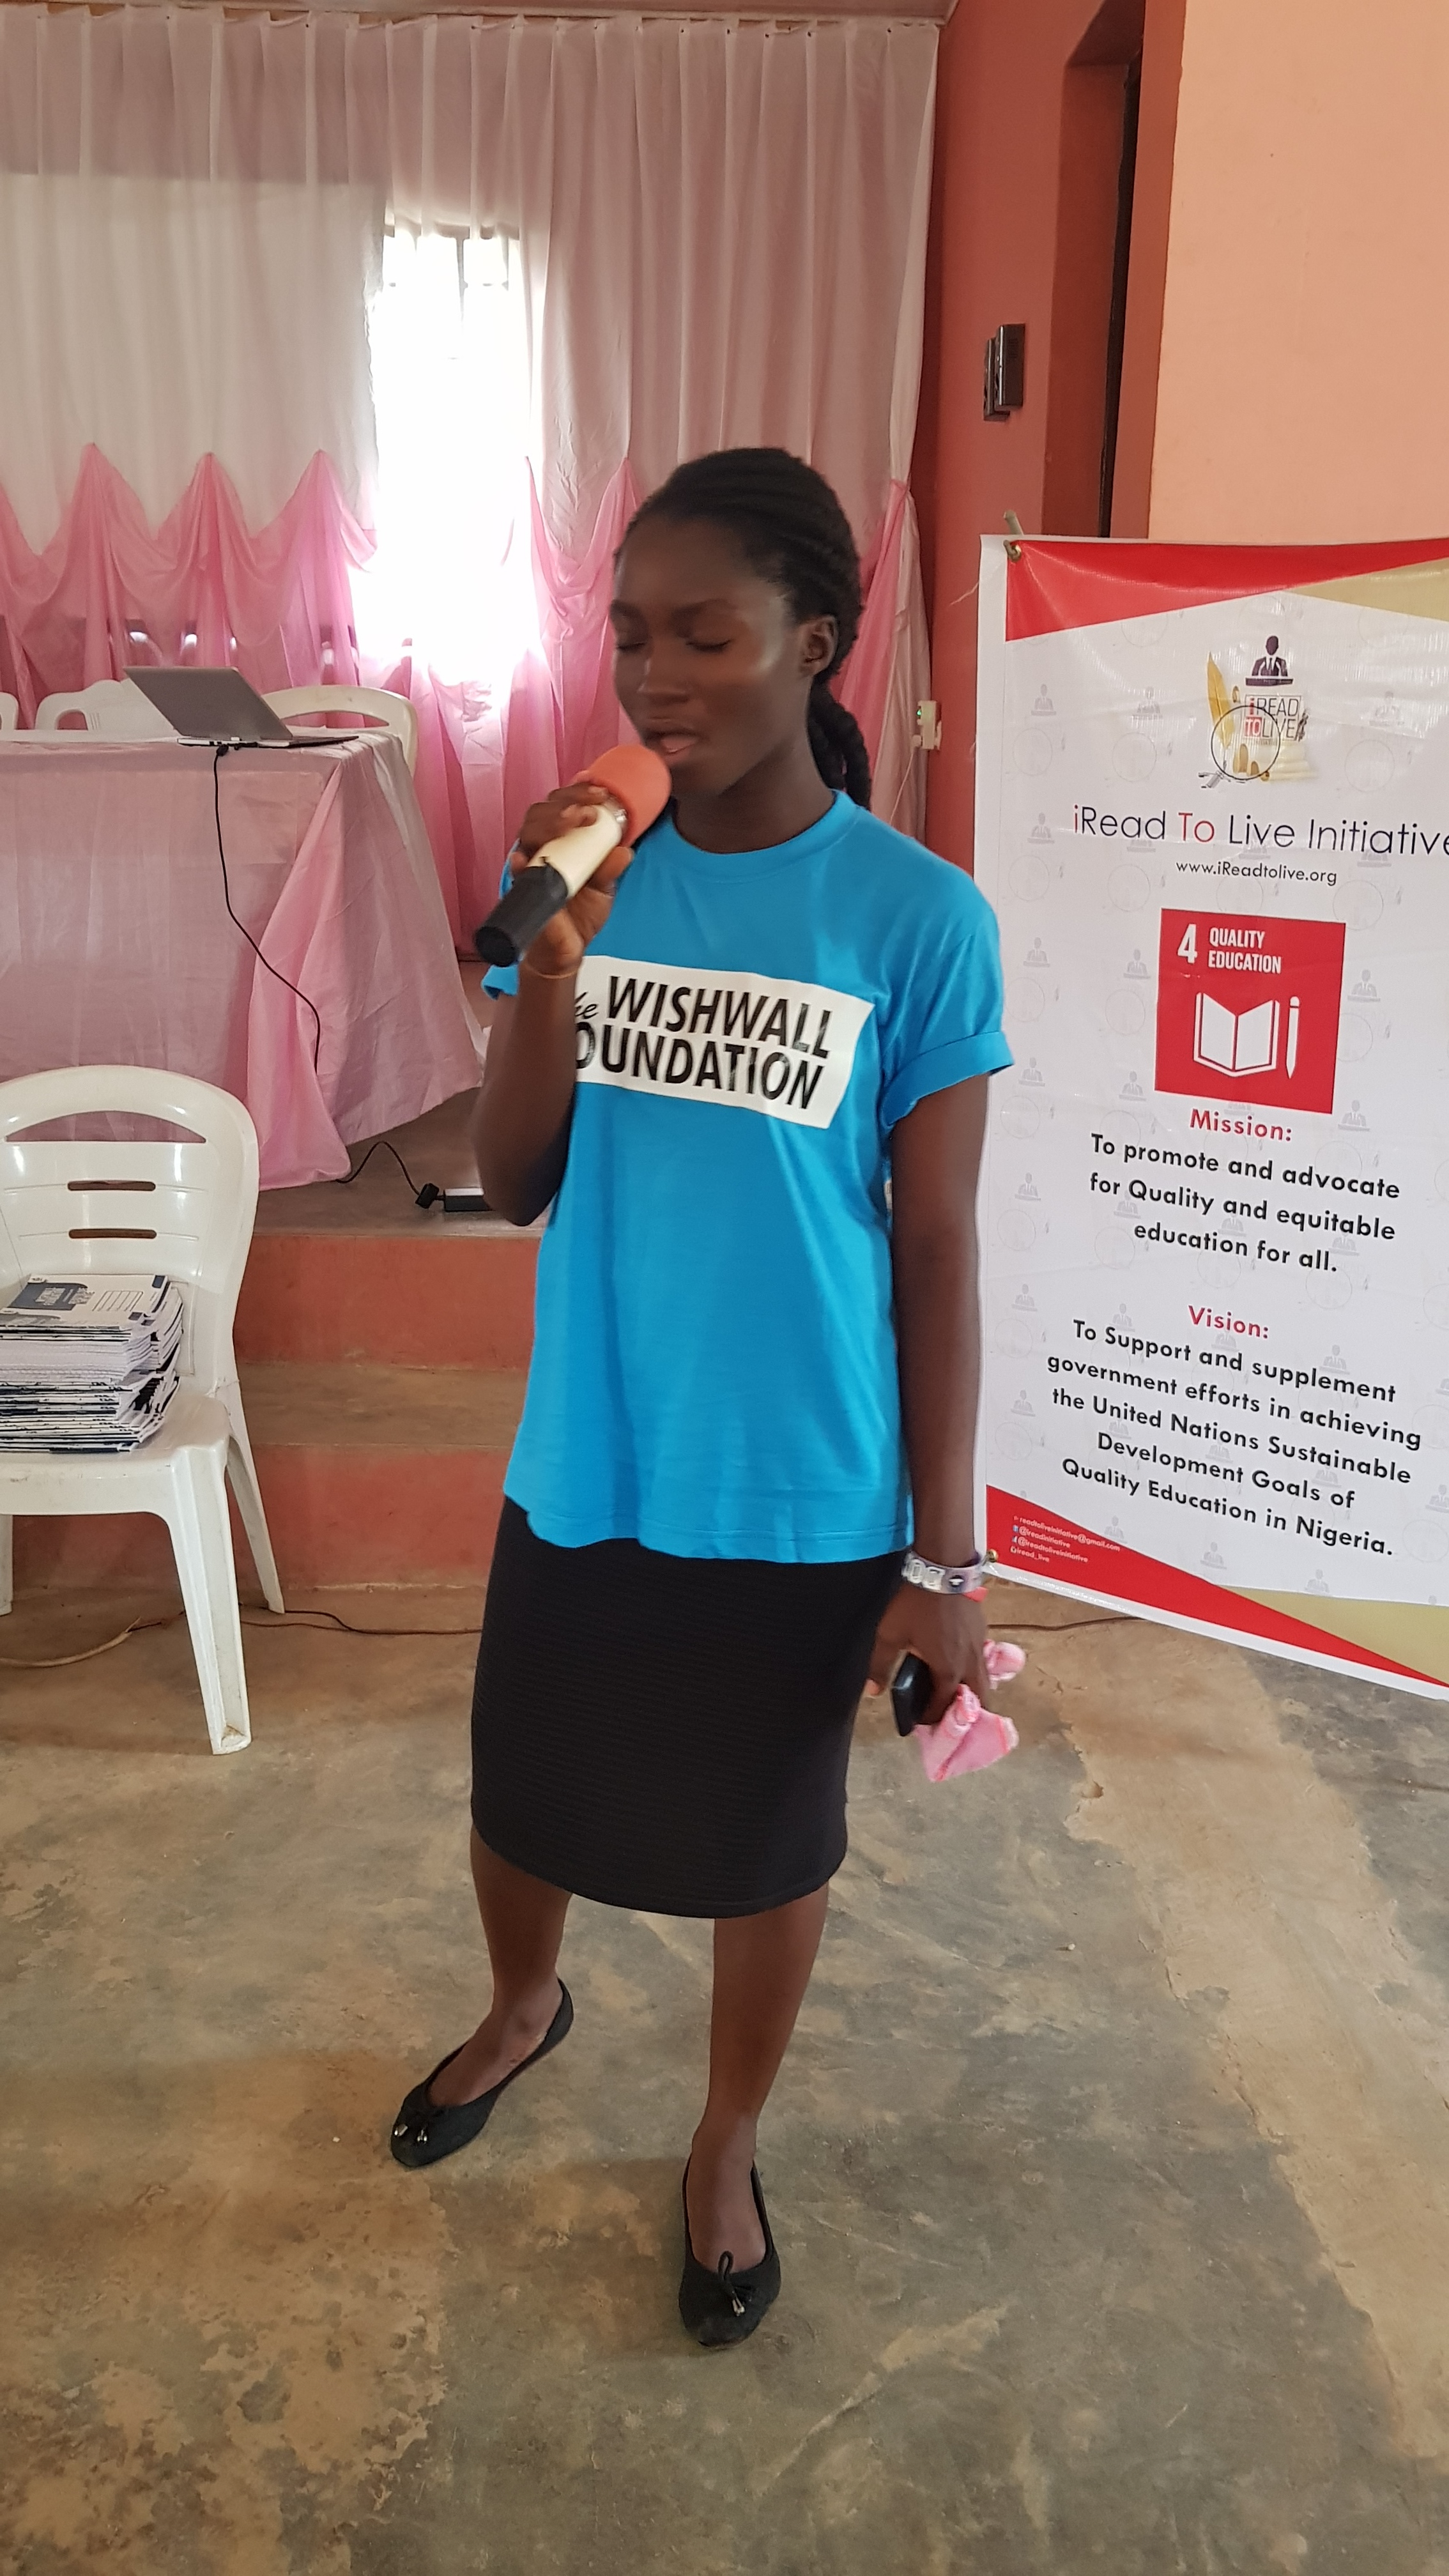 Vice President, National Ifetedo Students Union- Idowu Christianah gave the Opening prayer to commence the event.